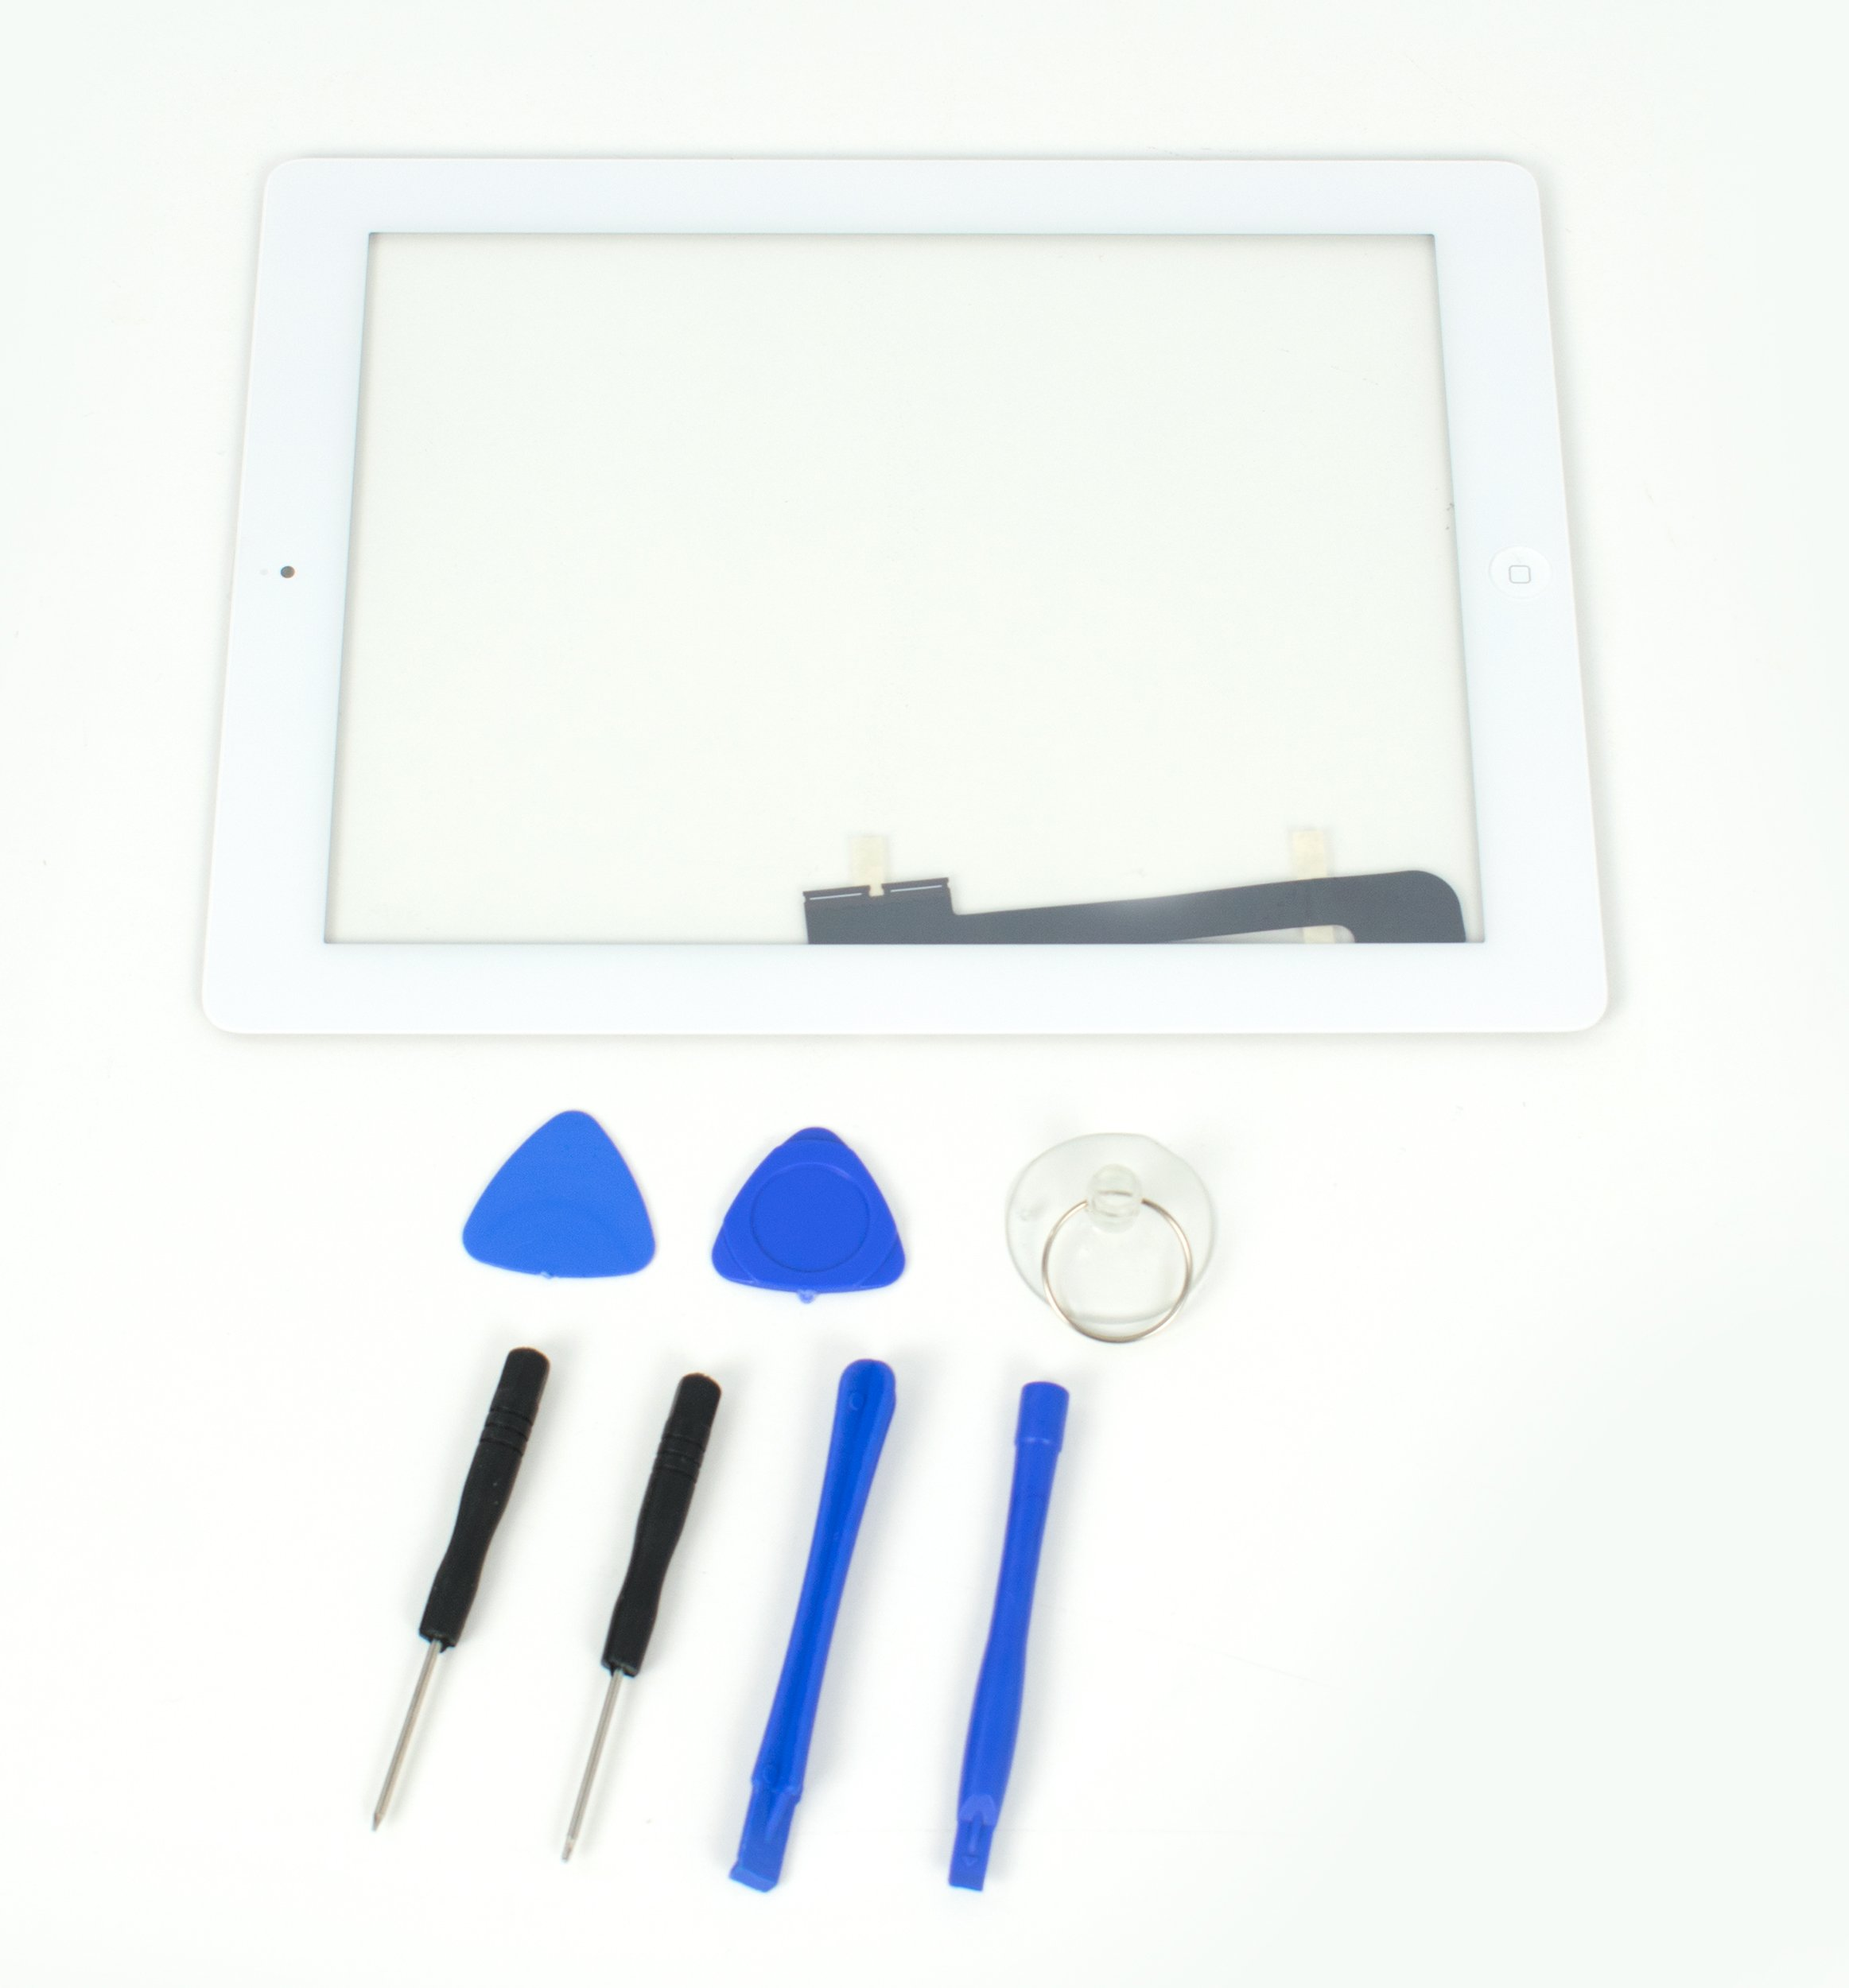 VIVO Touch Screen Digitizer Assembly- White, A1416, A1403, A1458, A1459, A1460 for Apple iPad 3/4